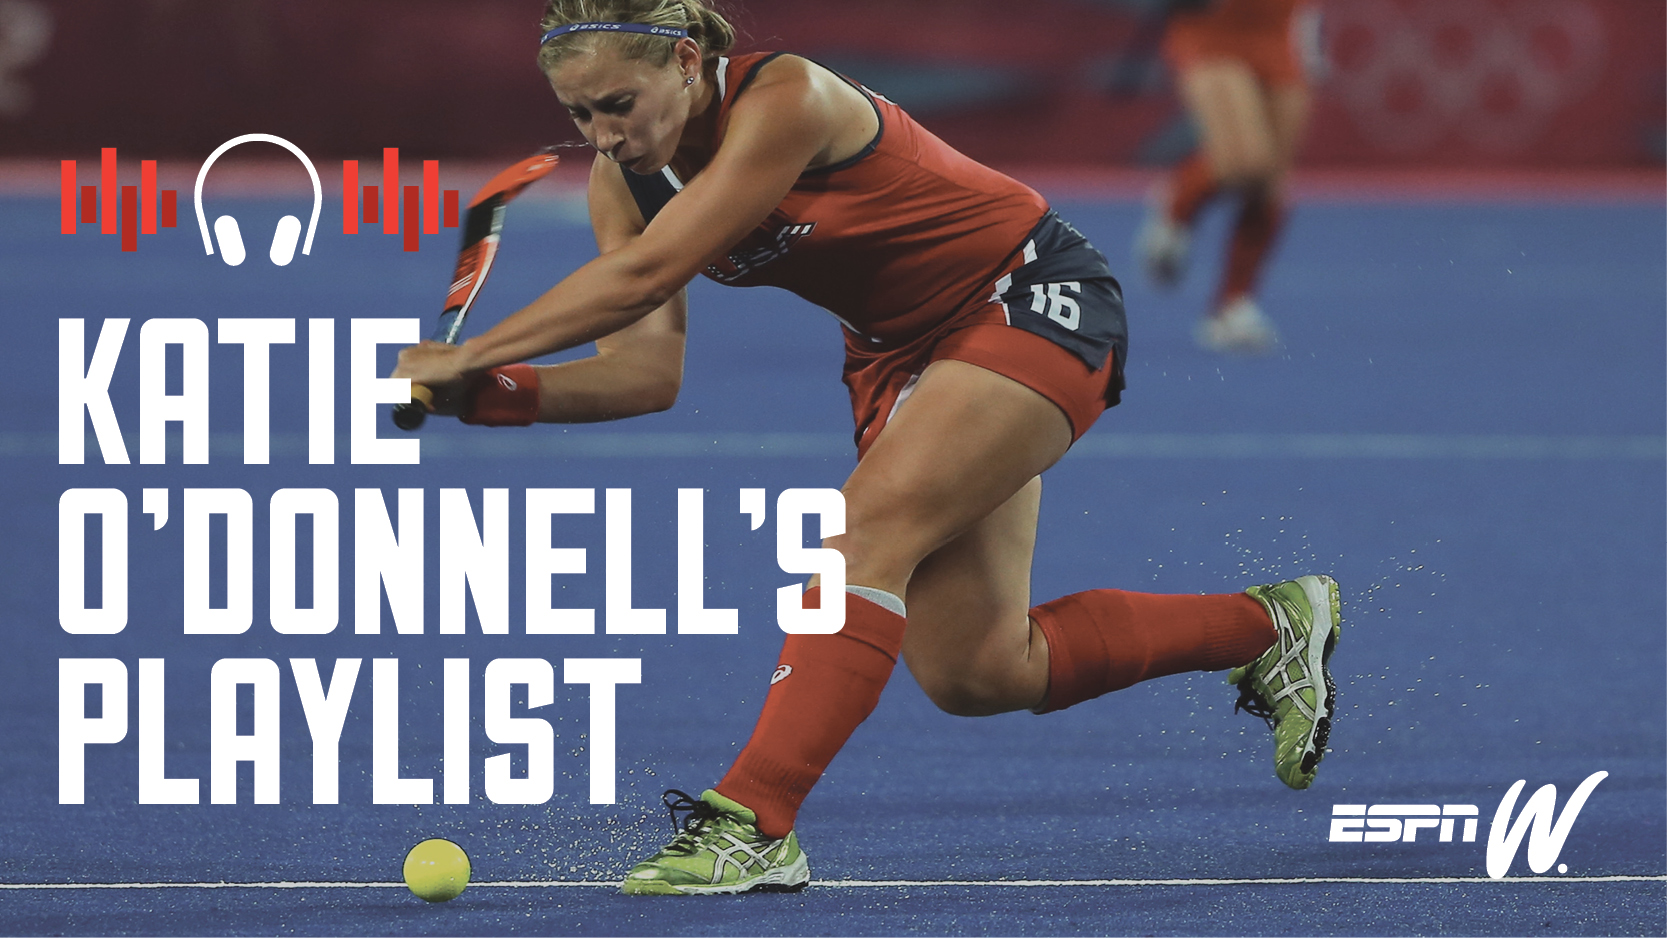 Spotify Athlete Playlist - Katie O'Donnell (field hockey)